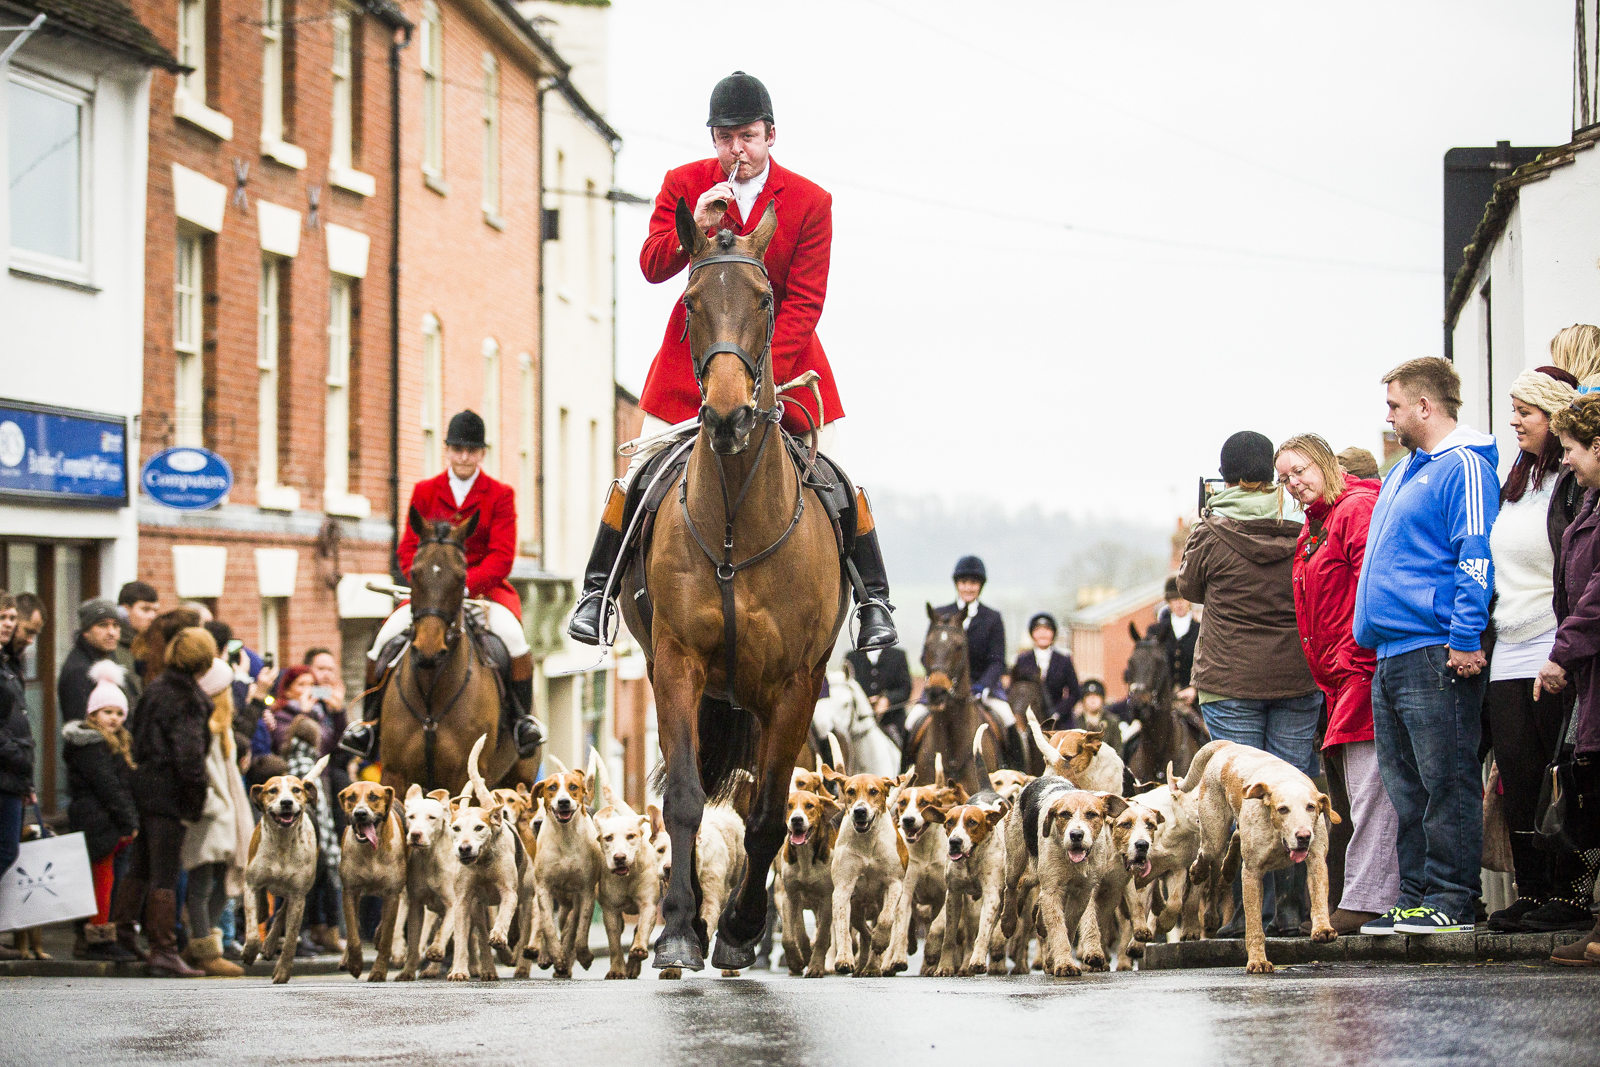 Members of the Ludlow Hunt embark on the Boxing Day Hunt through the centre of Ludlow, Shropshire.